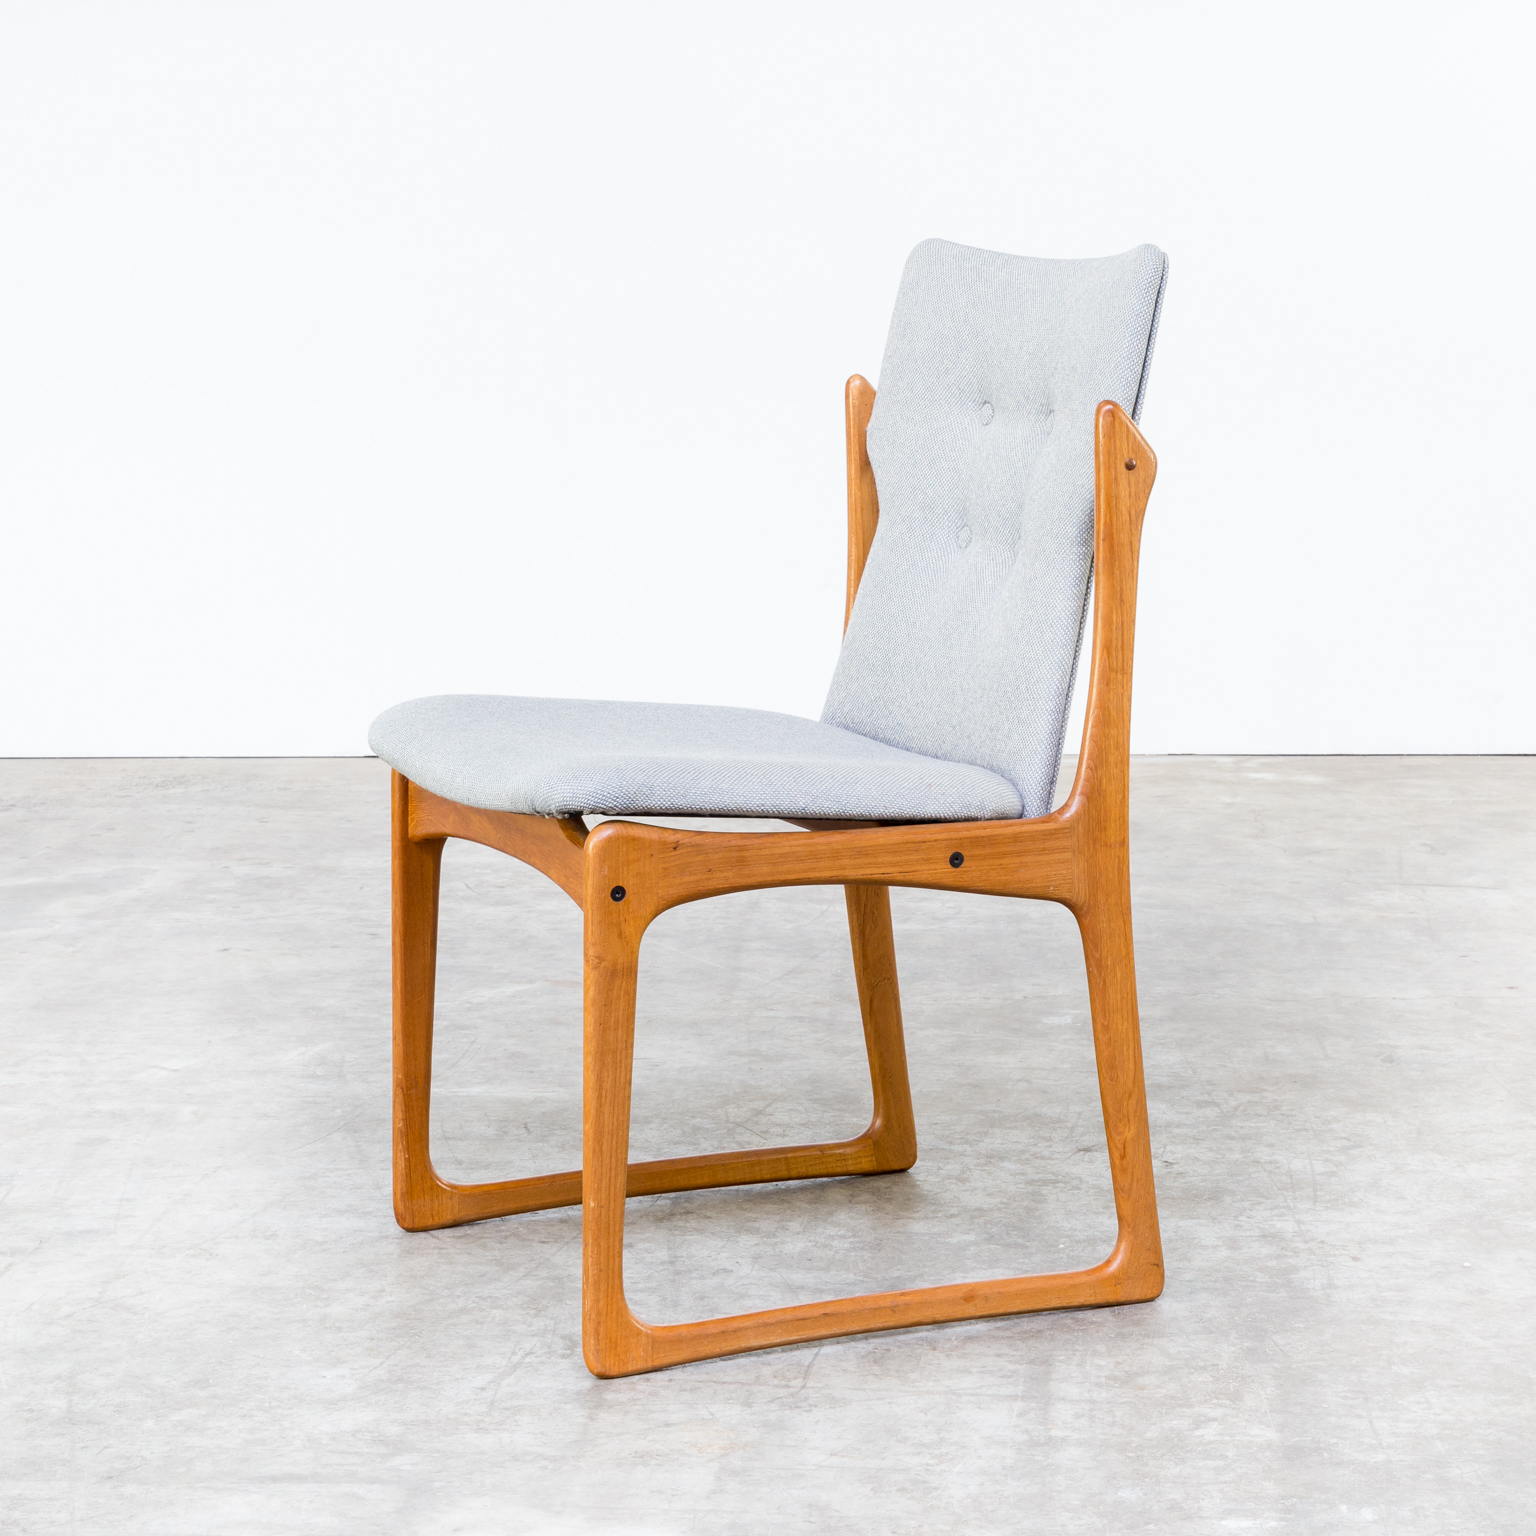 60s dining room chair for vamdrup stolefabrik denmark set for Designer chairs from the 60s